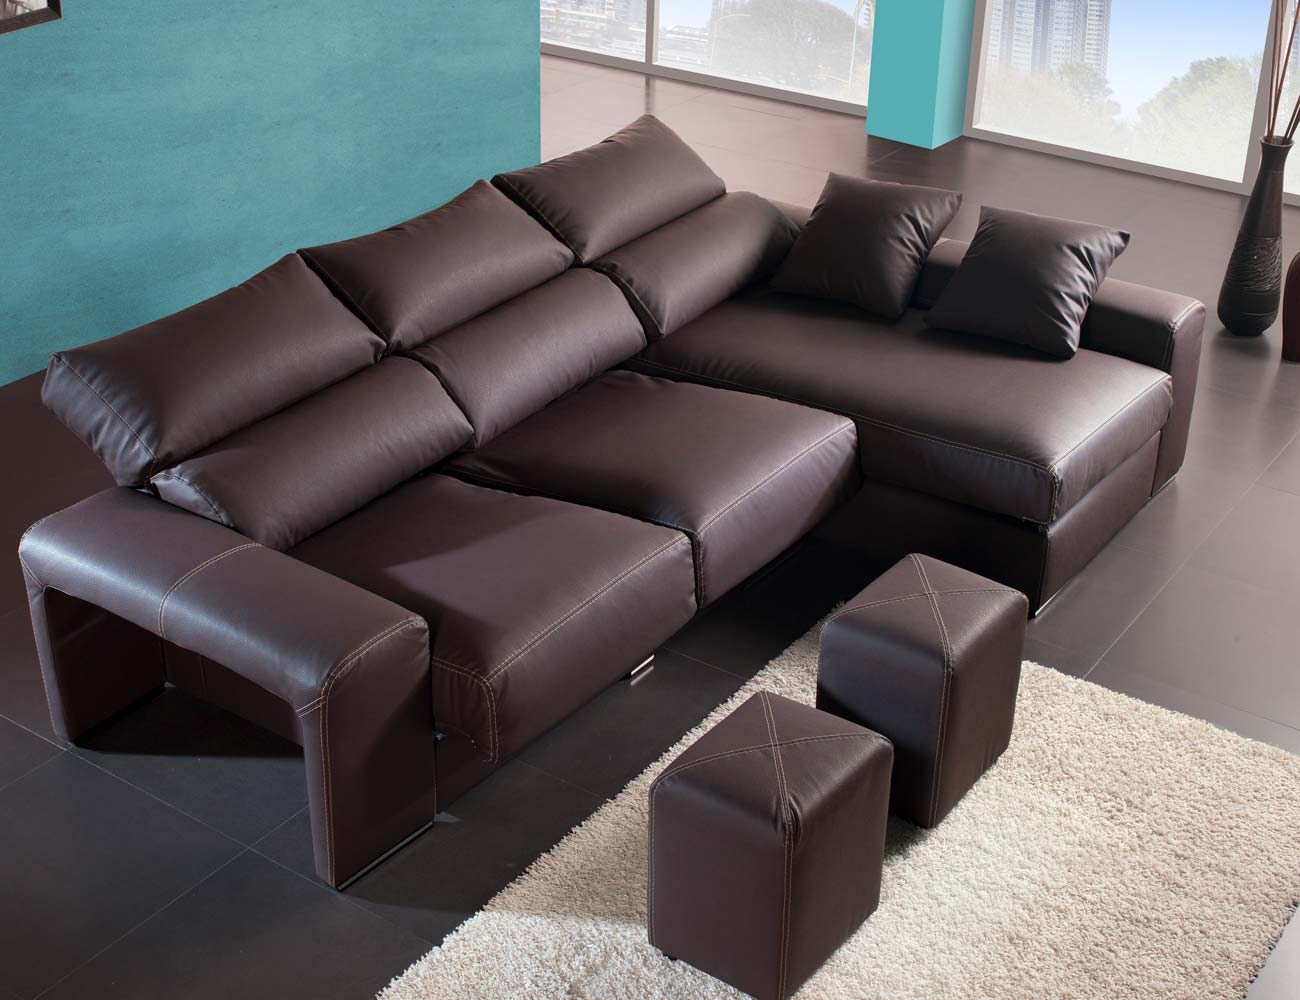 Sofa chaiselongue moderno polipiel chocolate poufs taburetes56